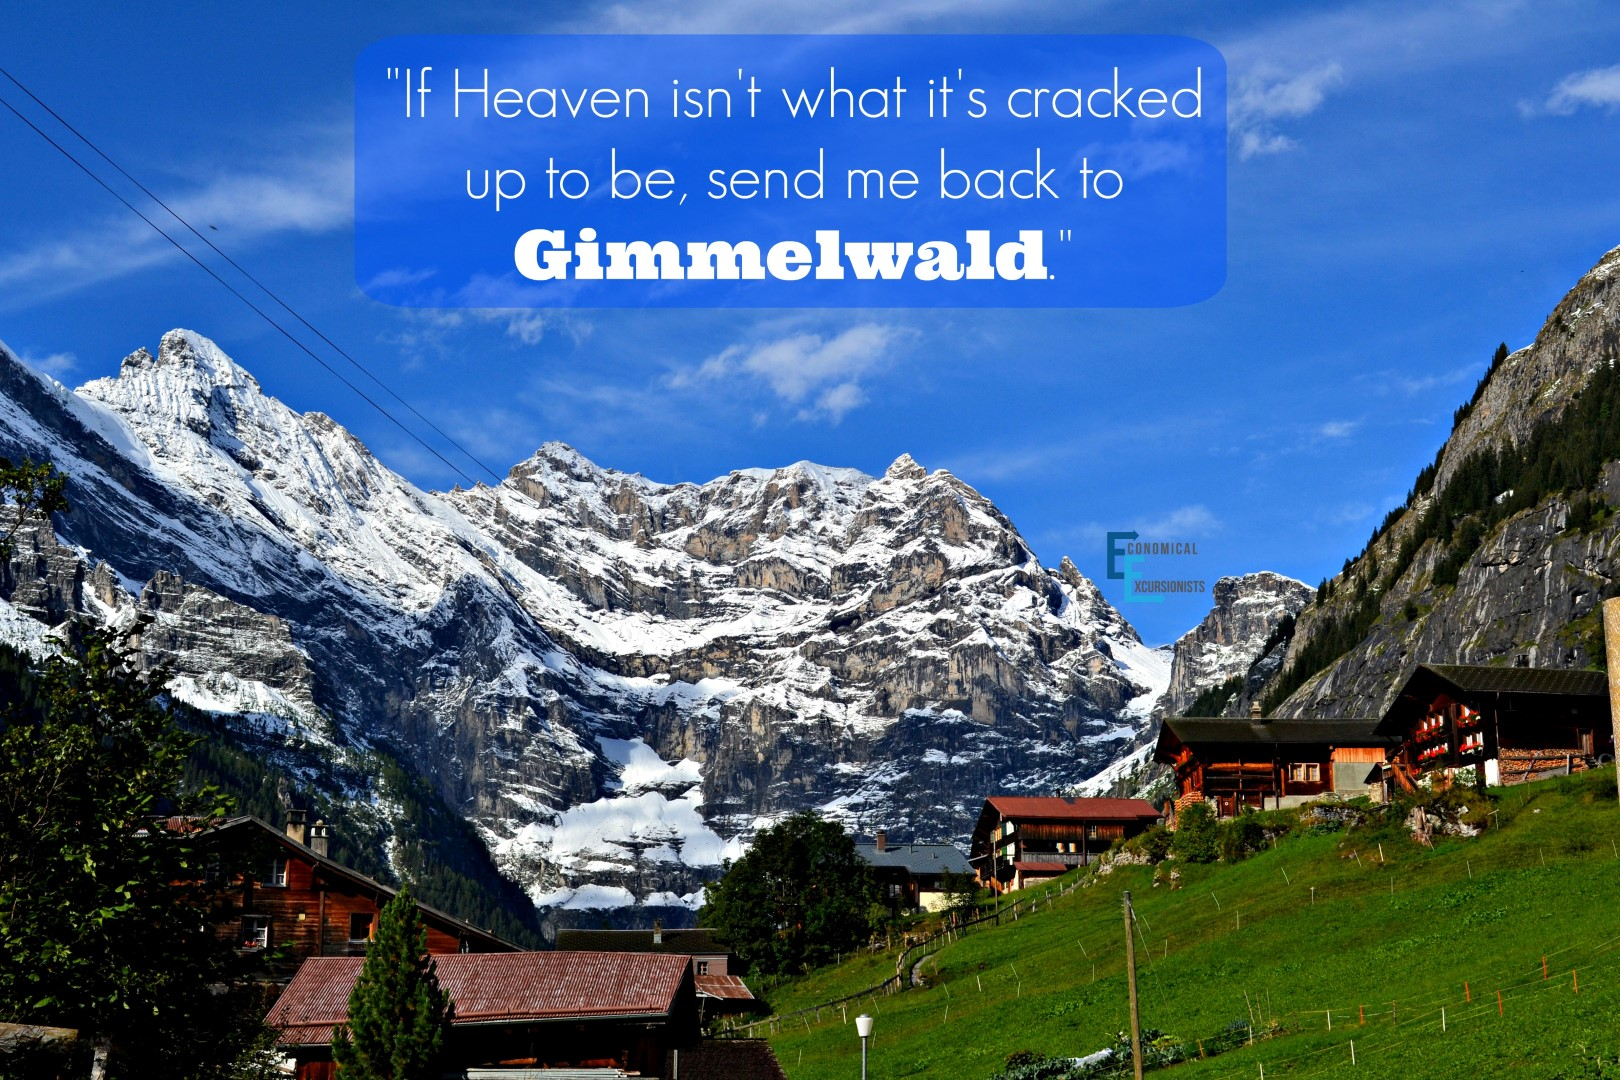 The Next 100 Years >> Gimmelwald: could this be heaven on Earth?